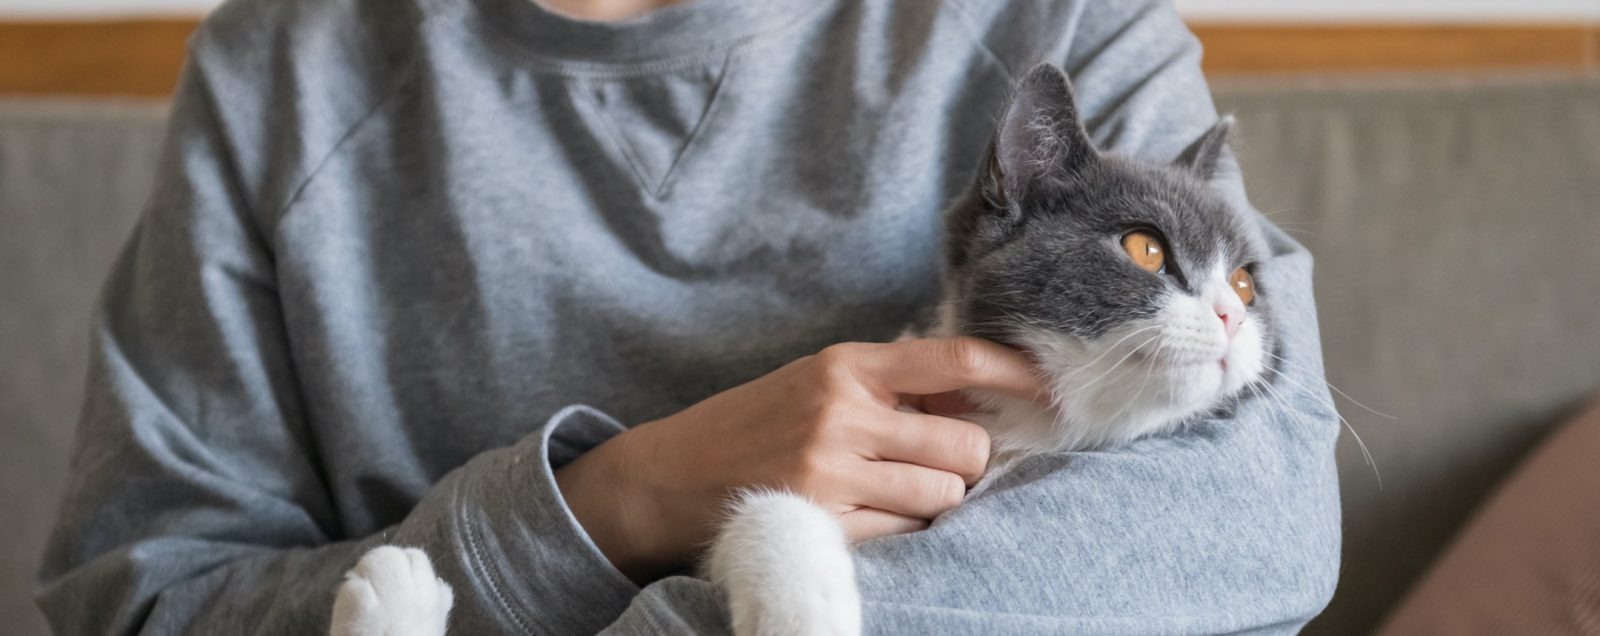 Person holding a grey cat